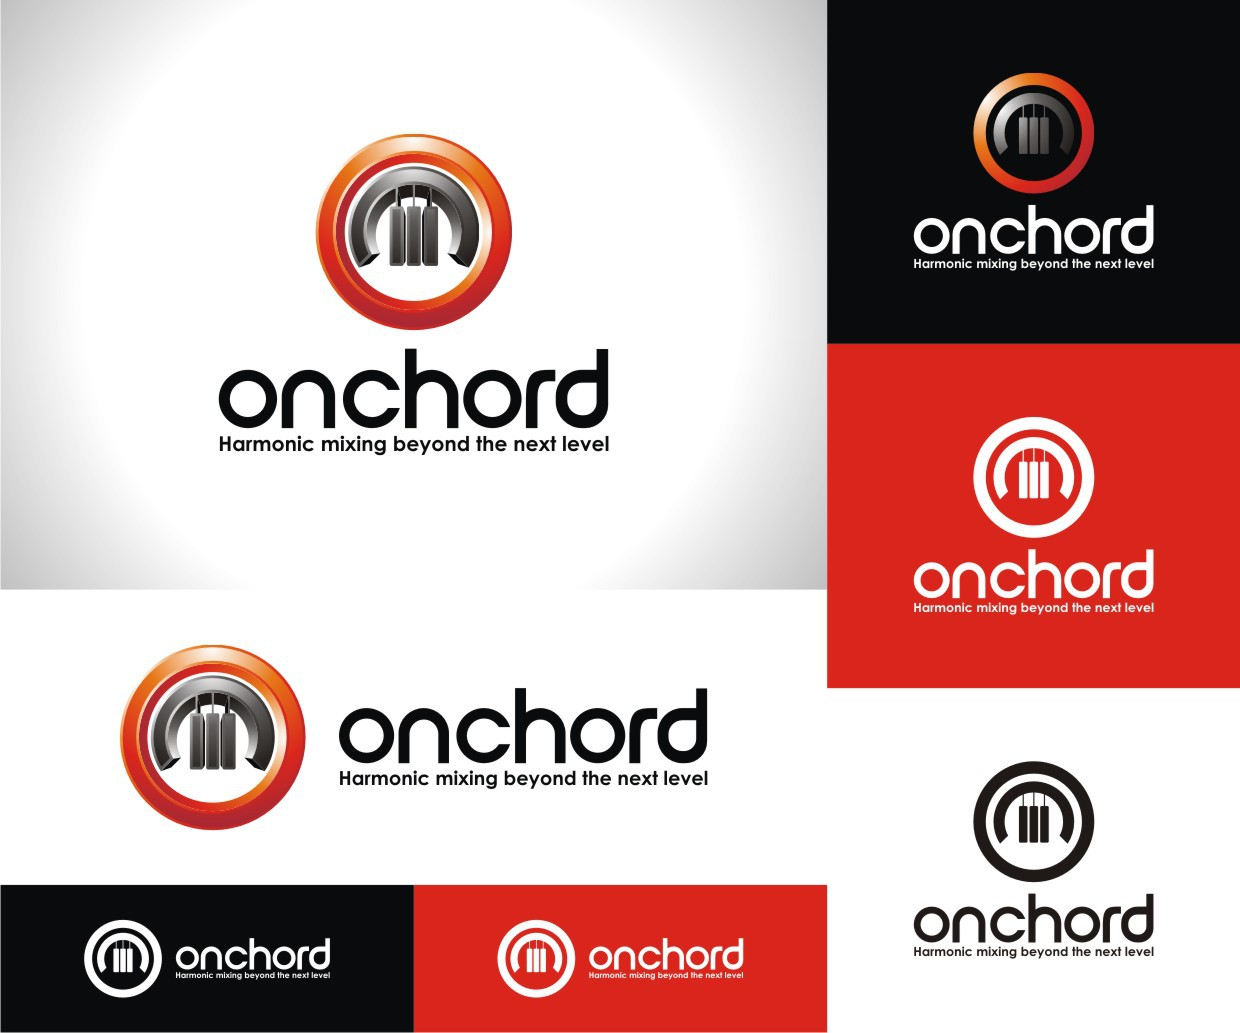 logo for onchord